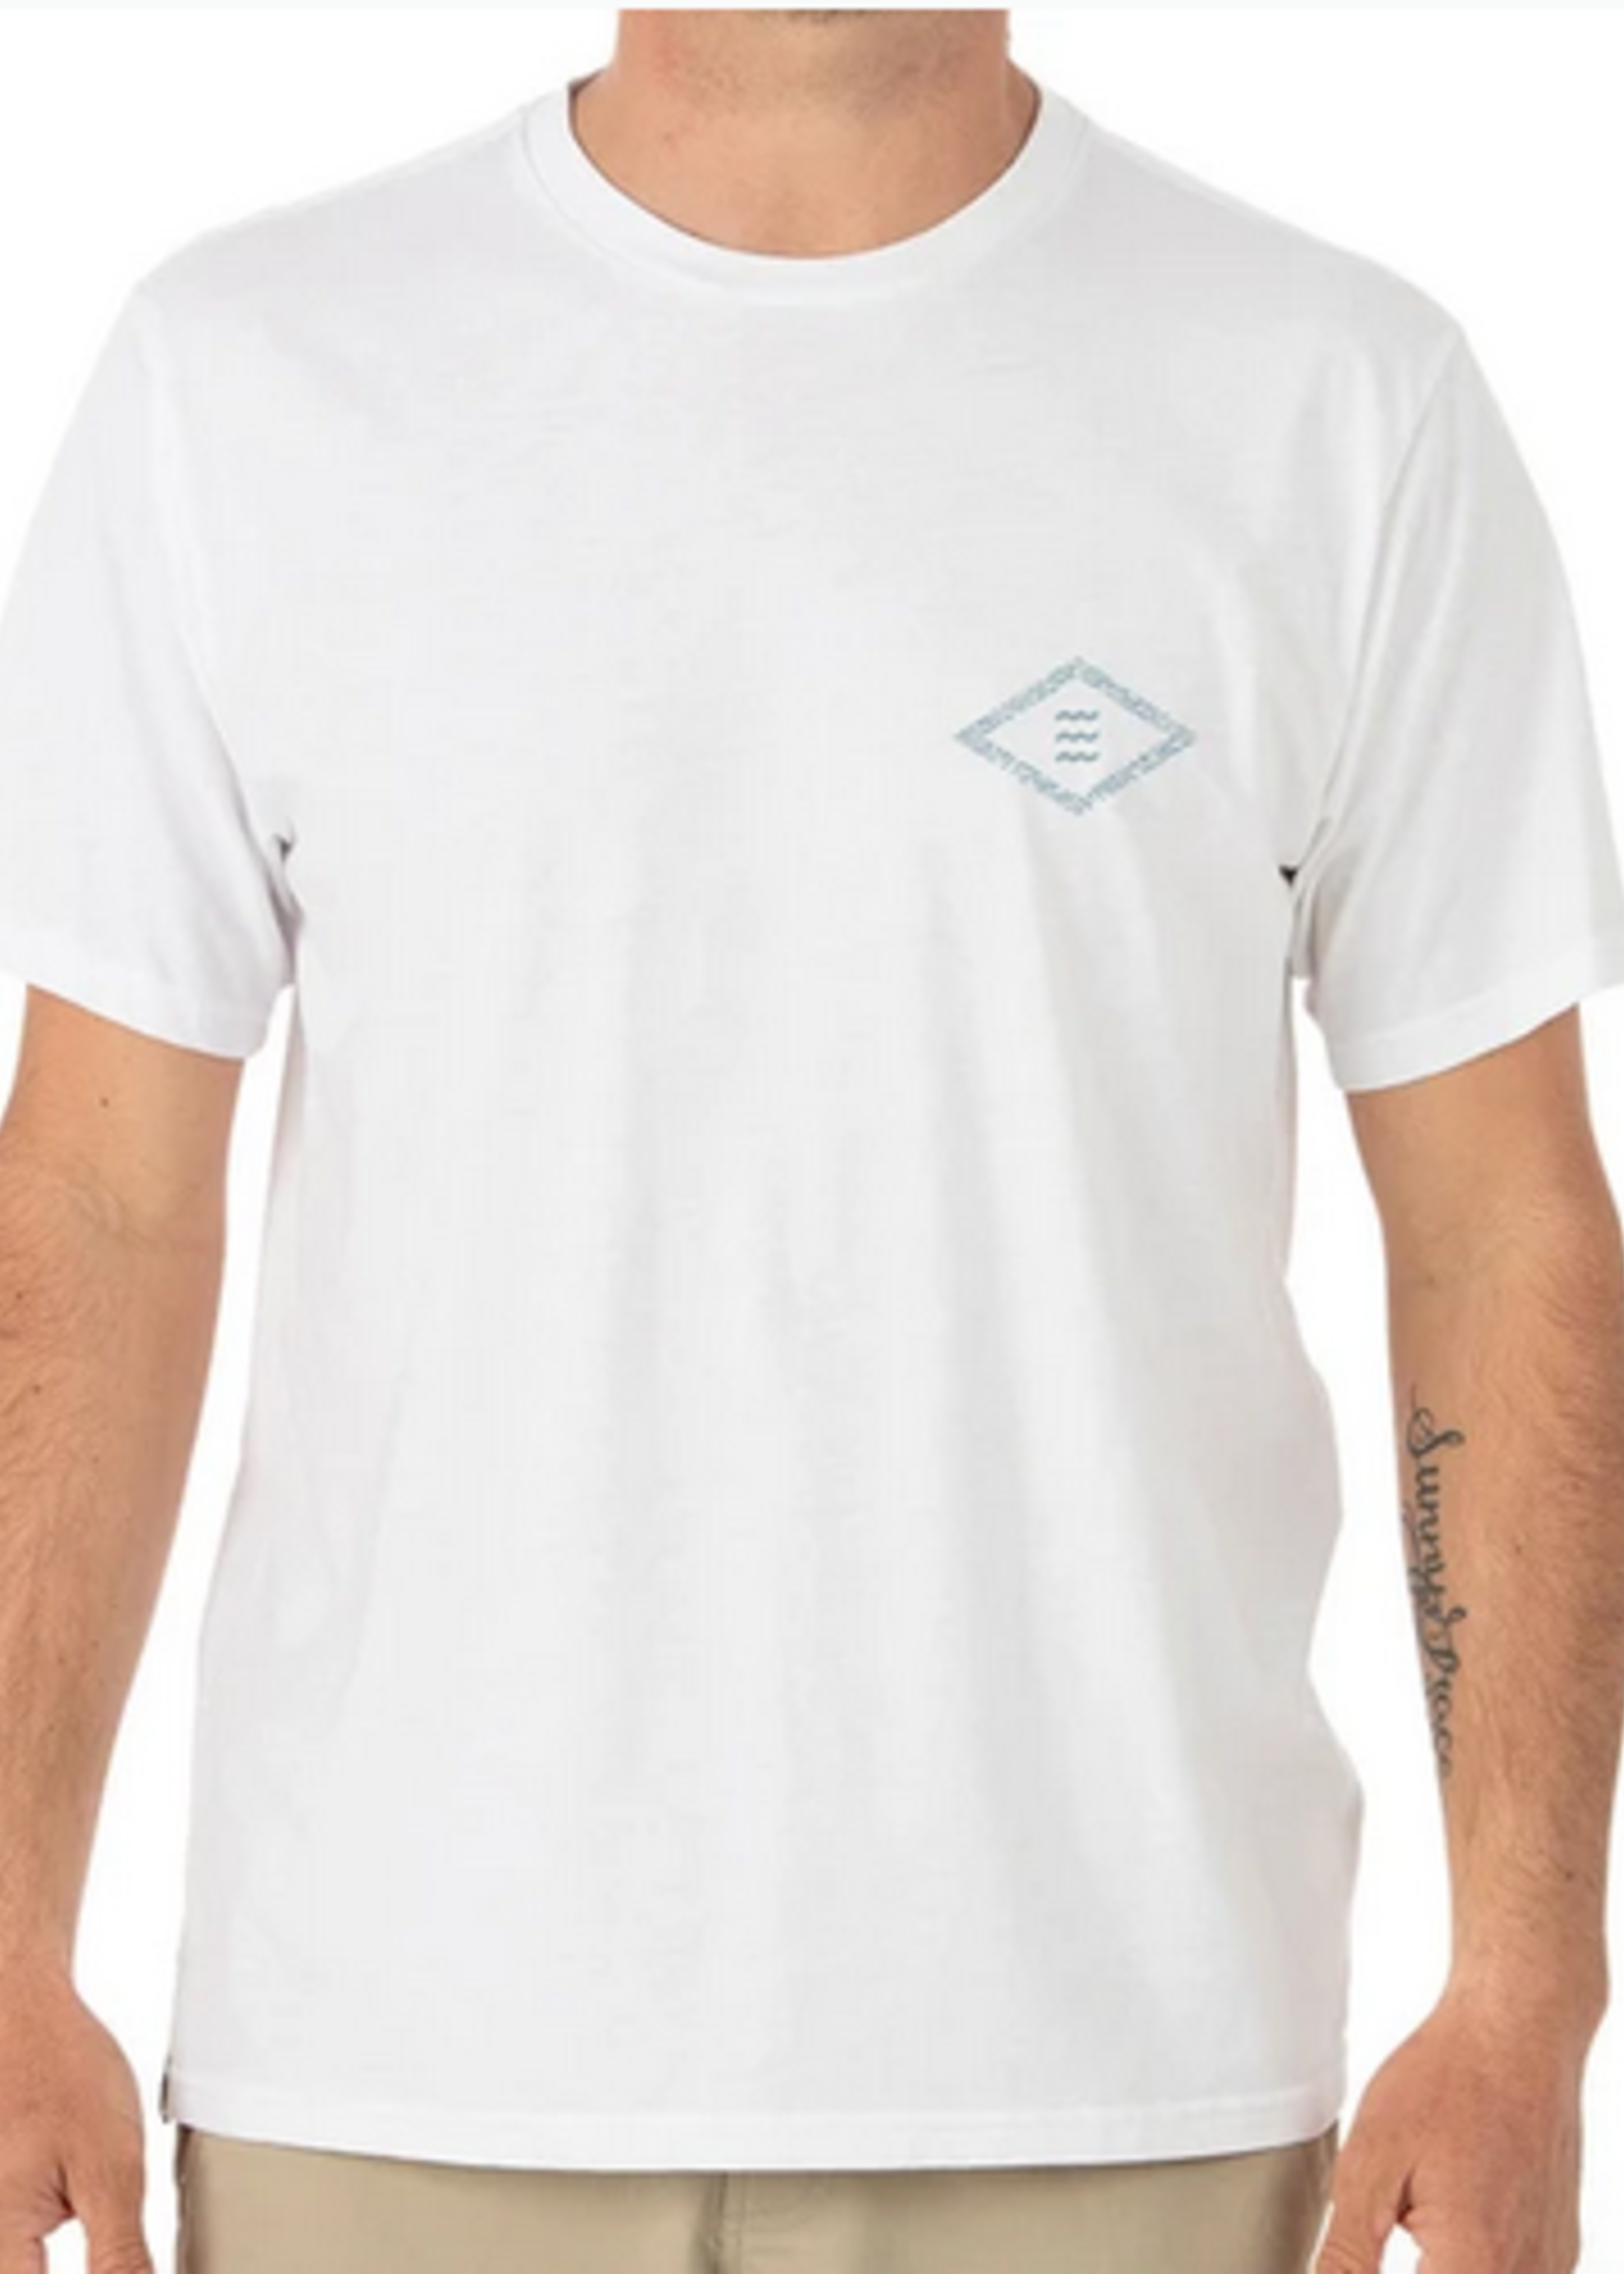 Free Fly Tidewaters Tee White